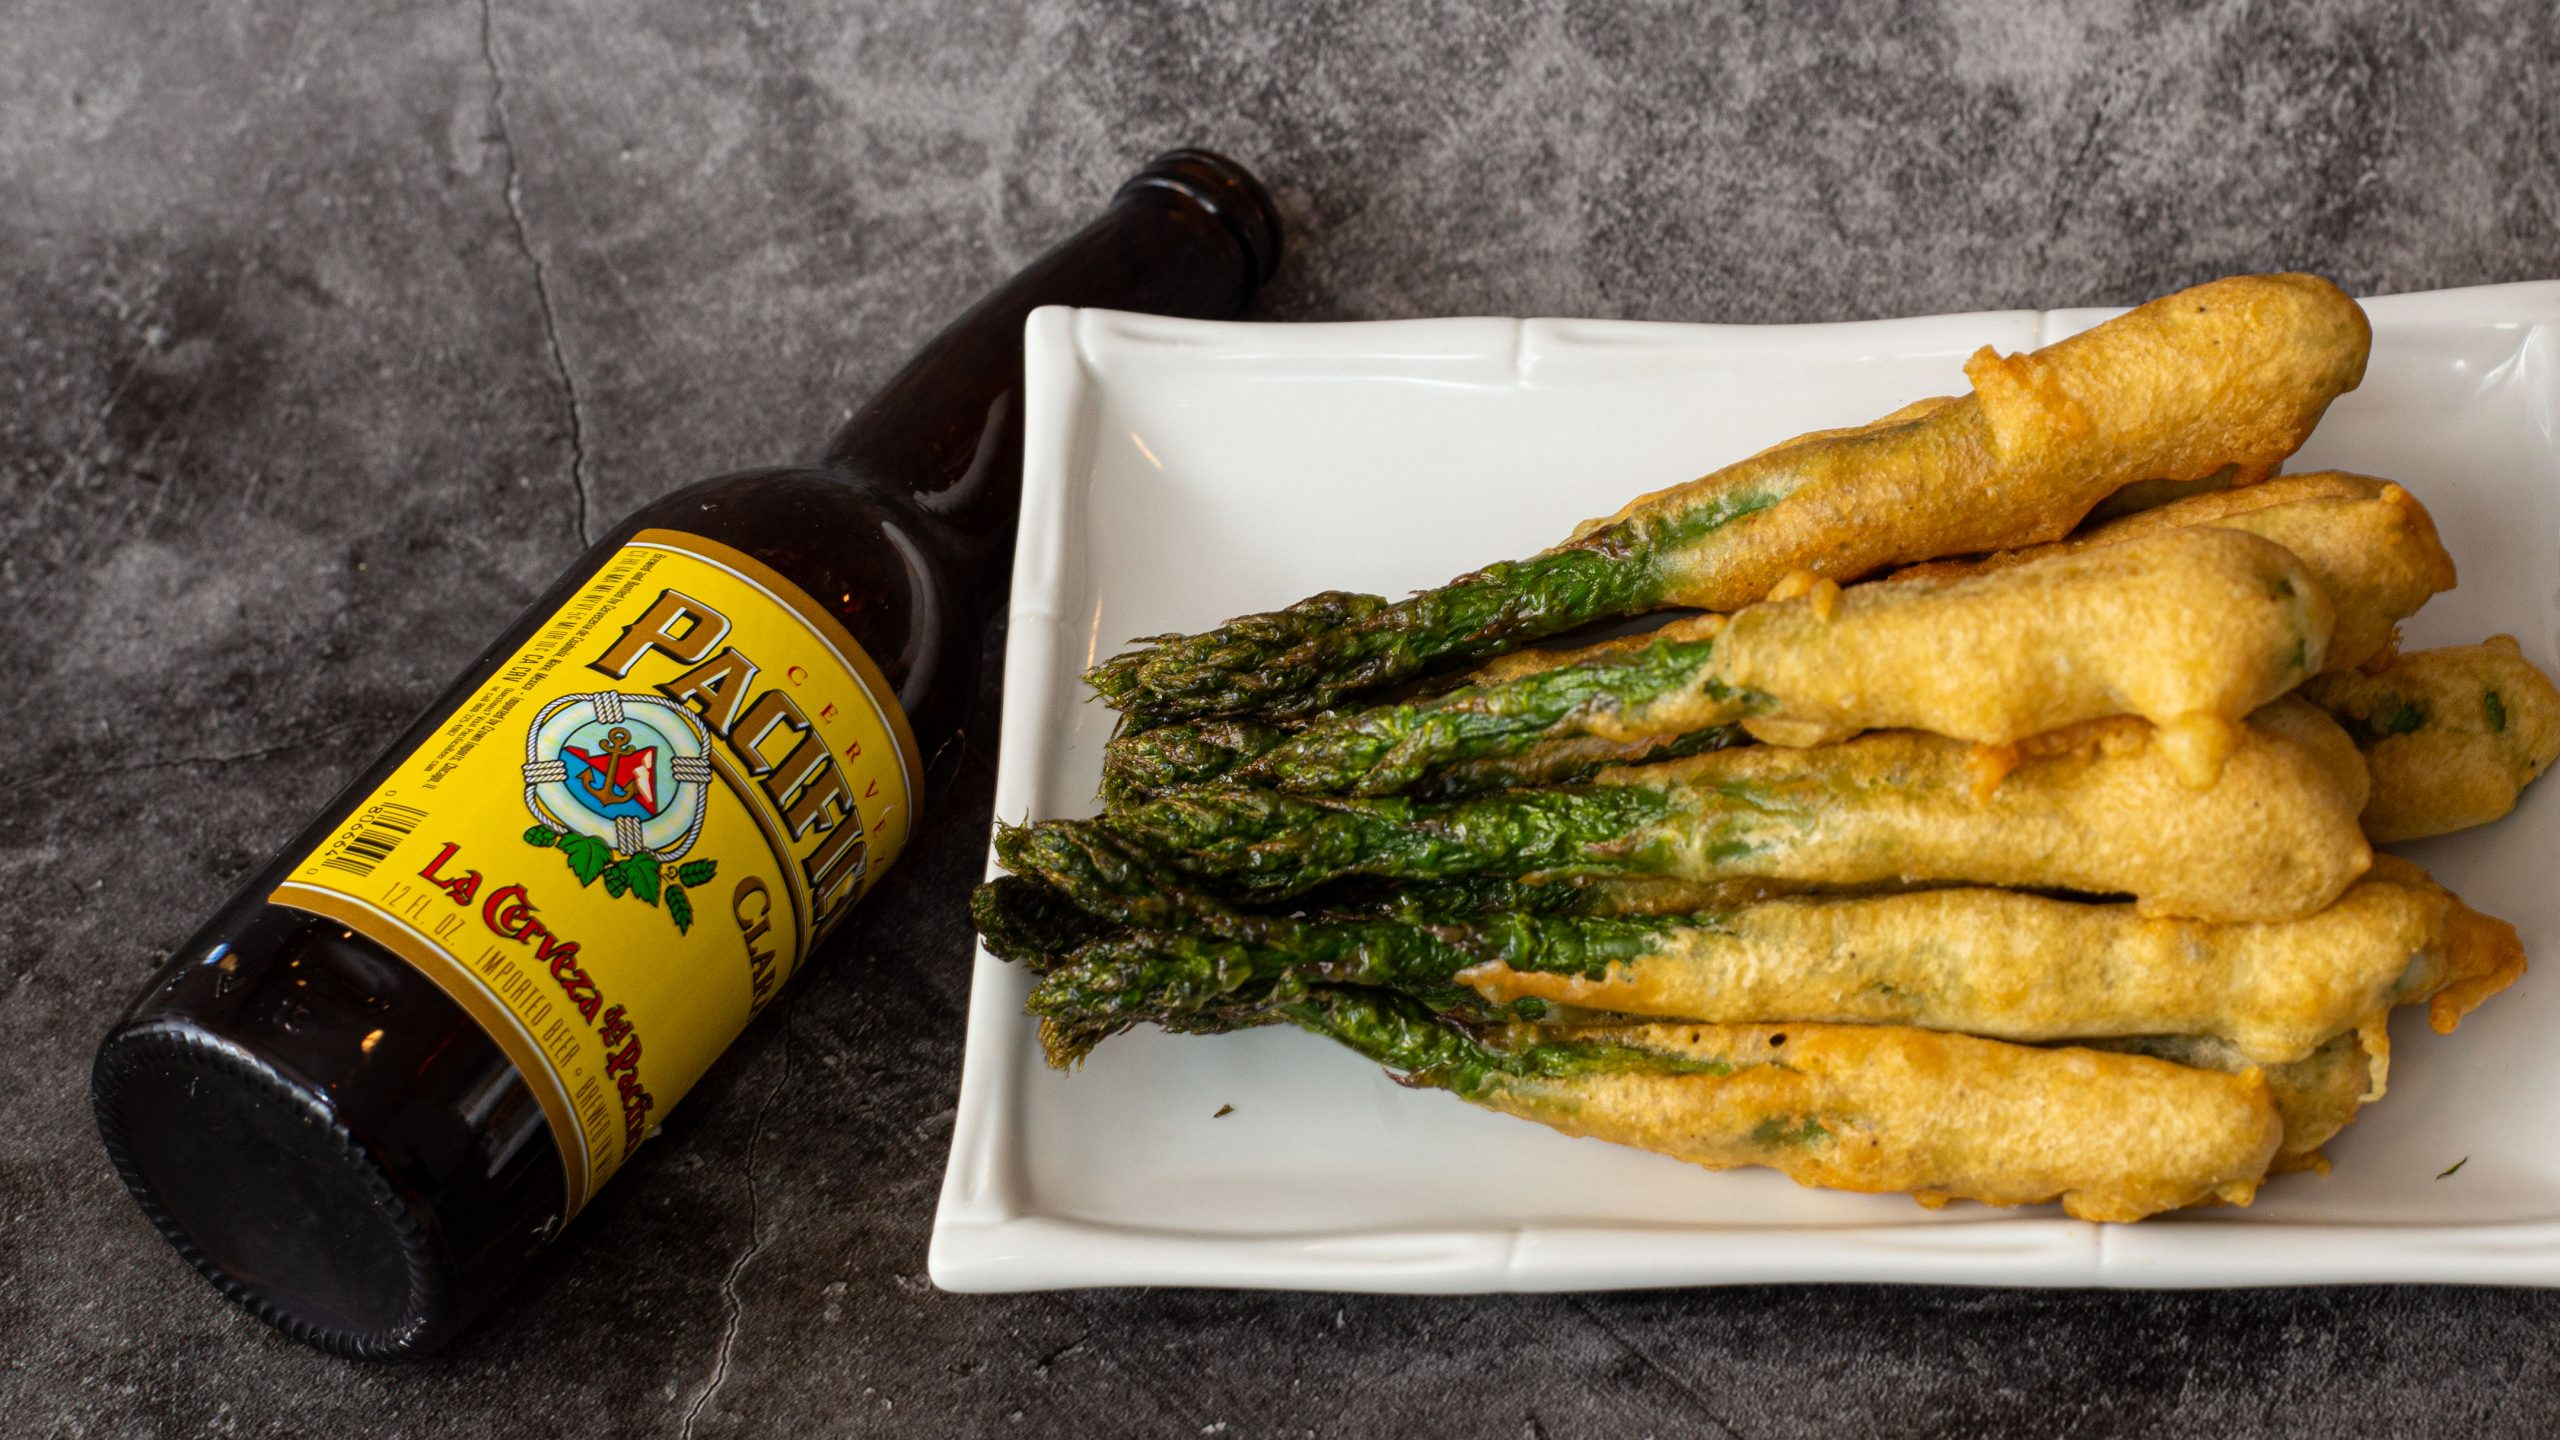 Beer battered asparagus on plate beside a bottle of beer